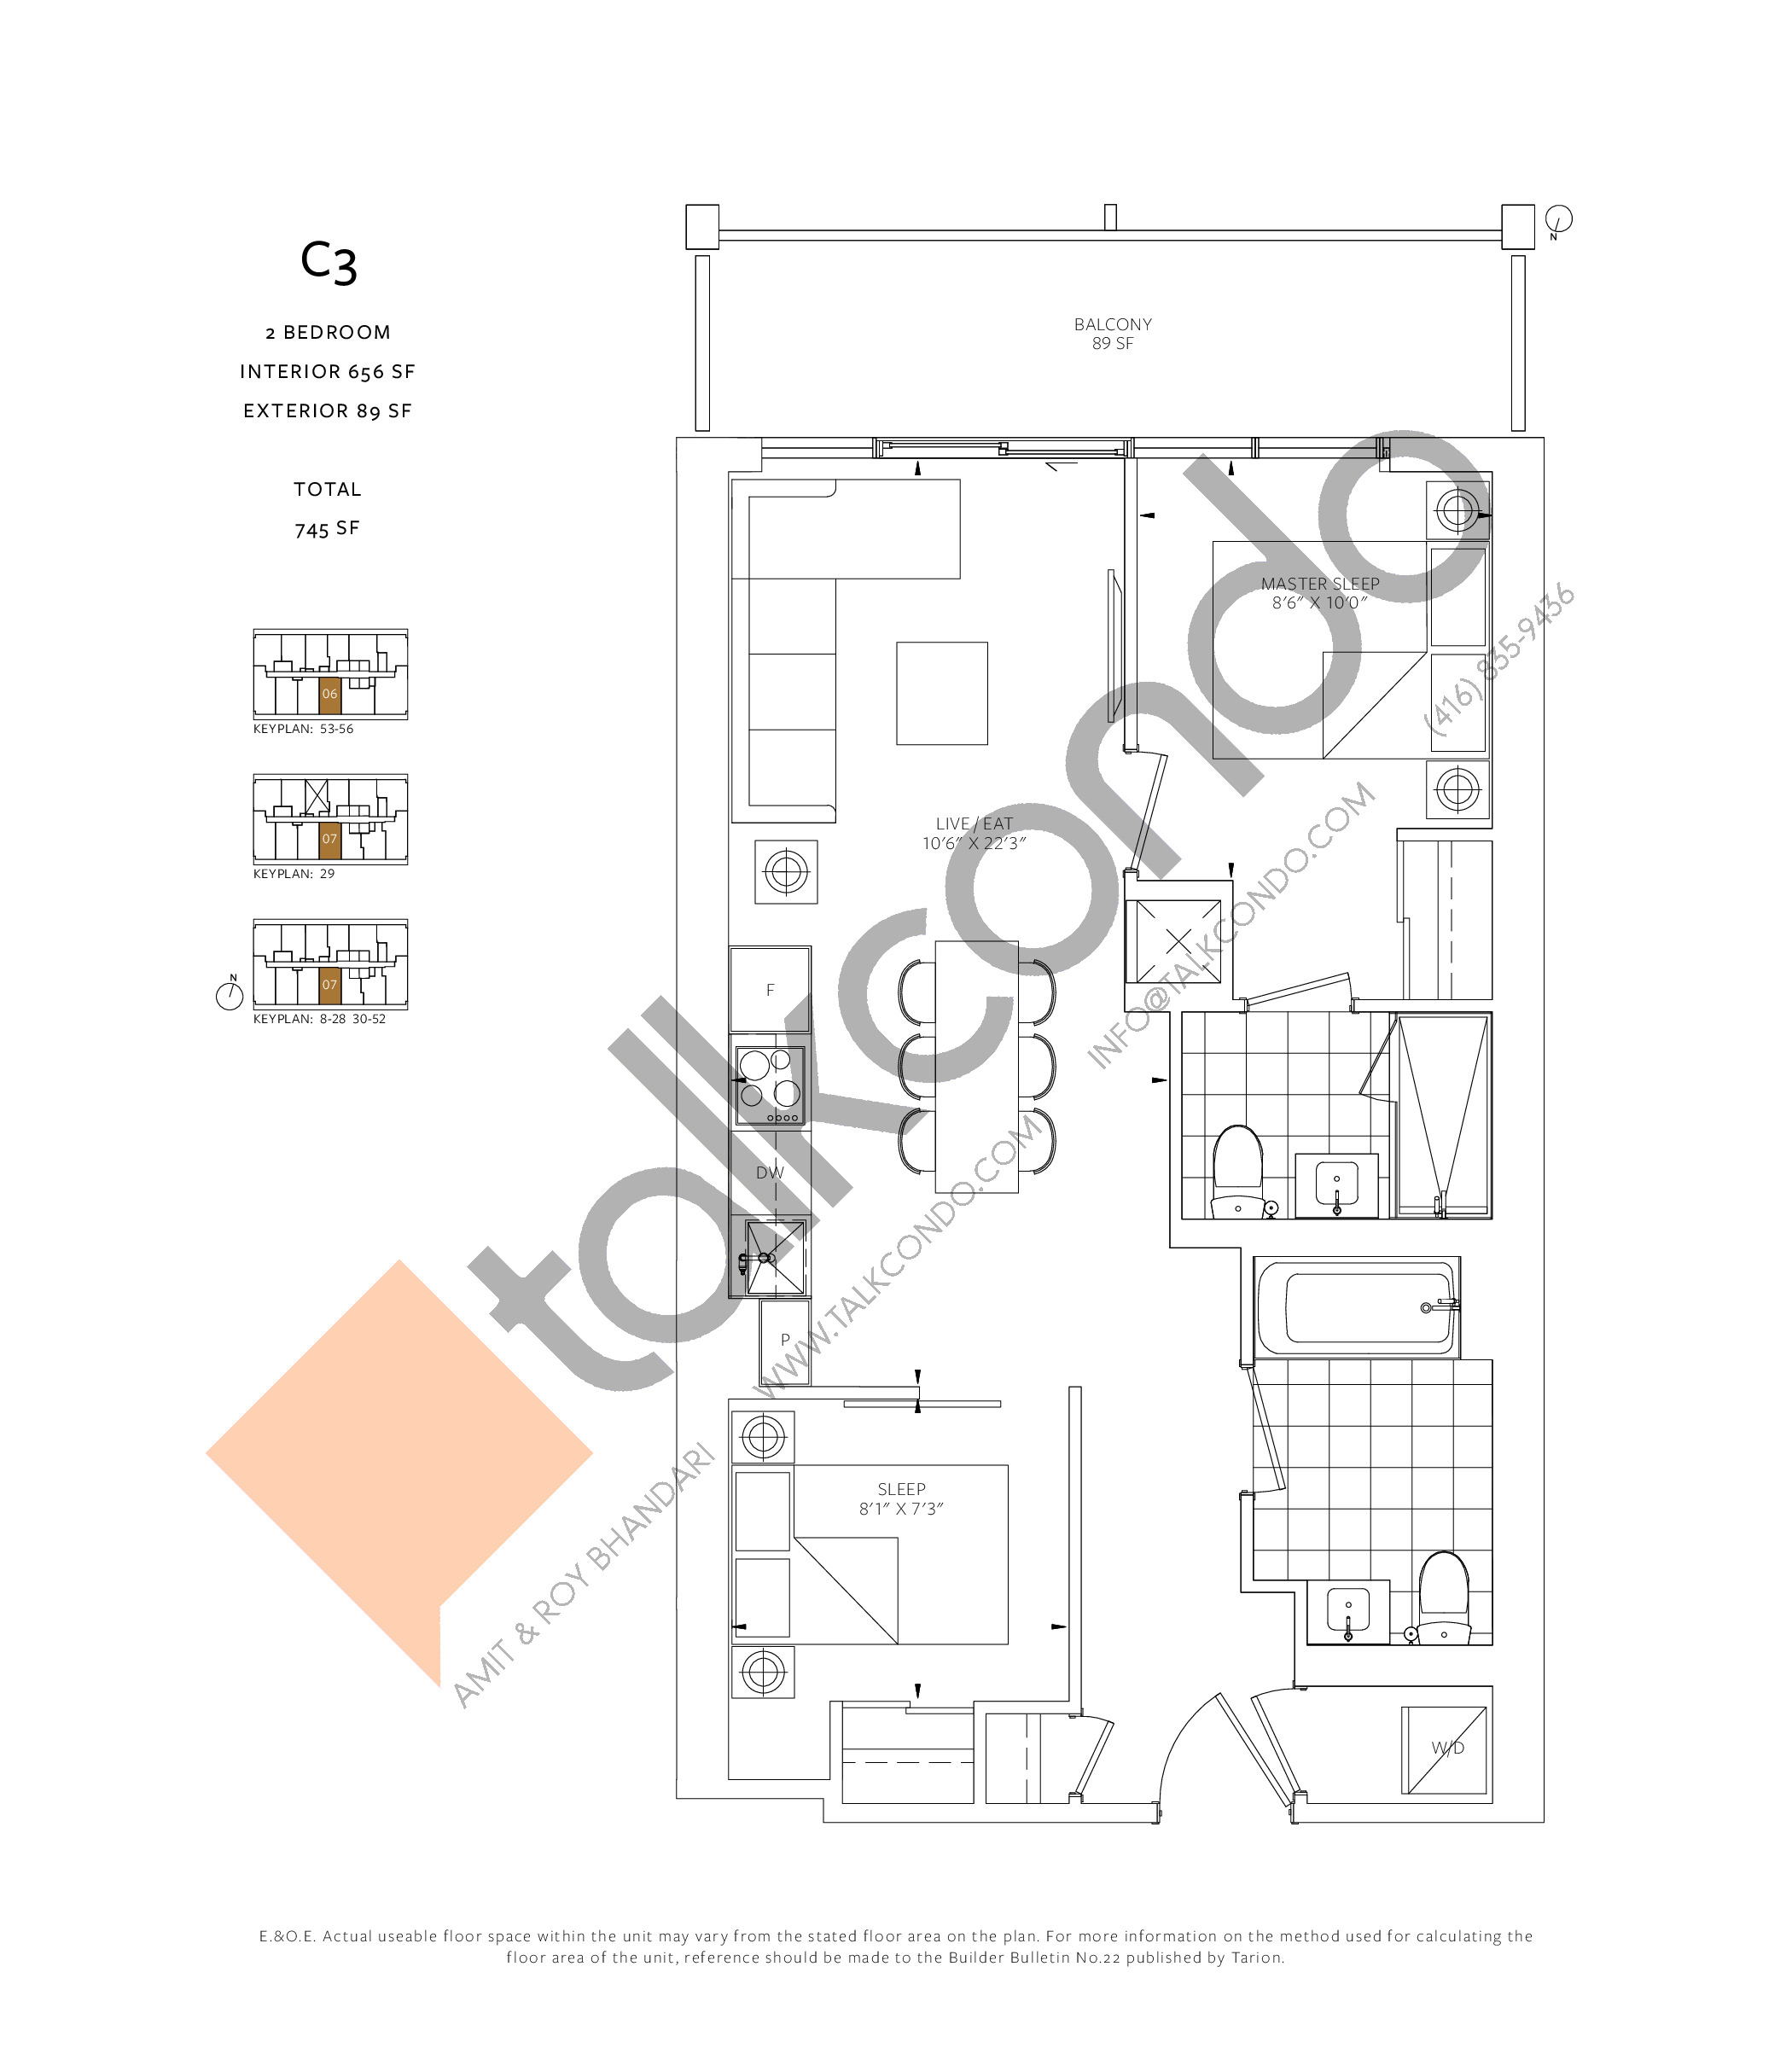 C3 Floor Plan at 88 Queen Condos - 656 sq.ft